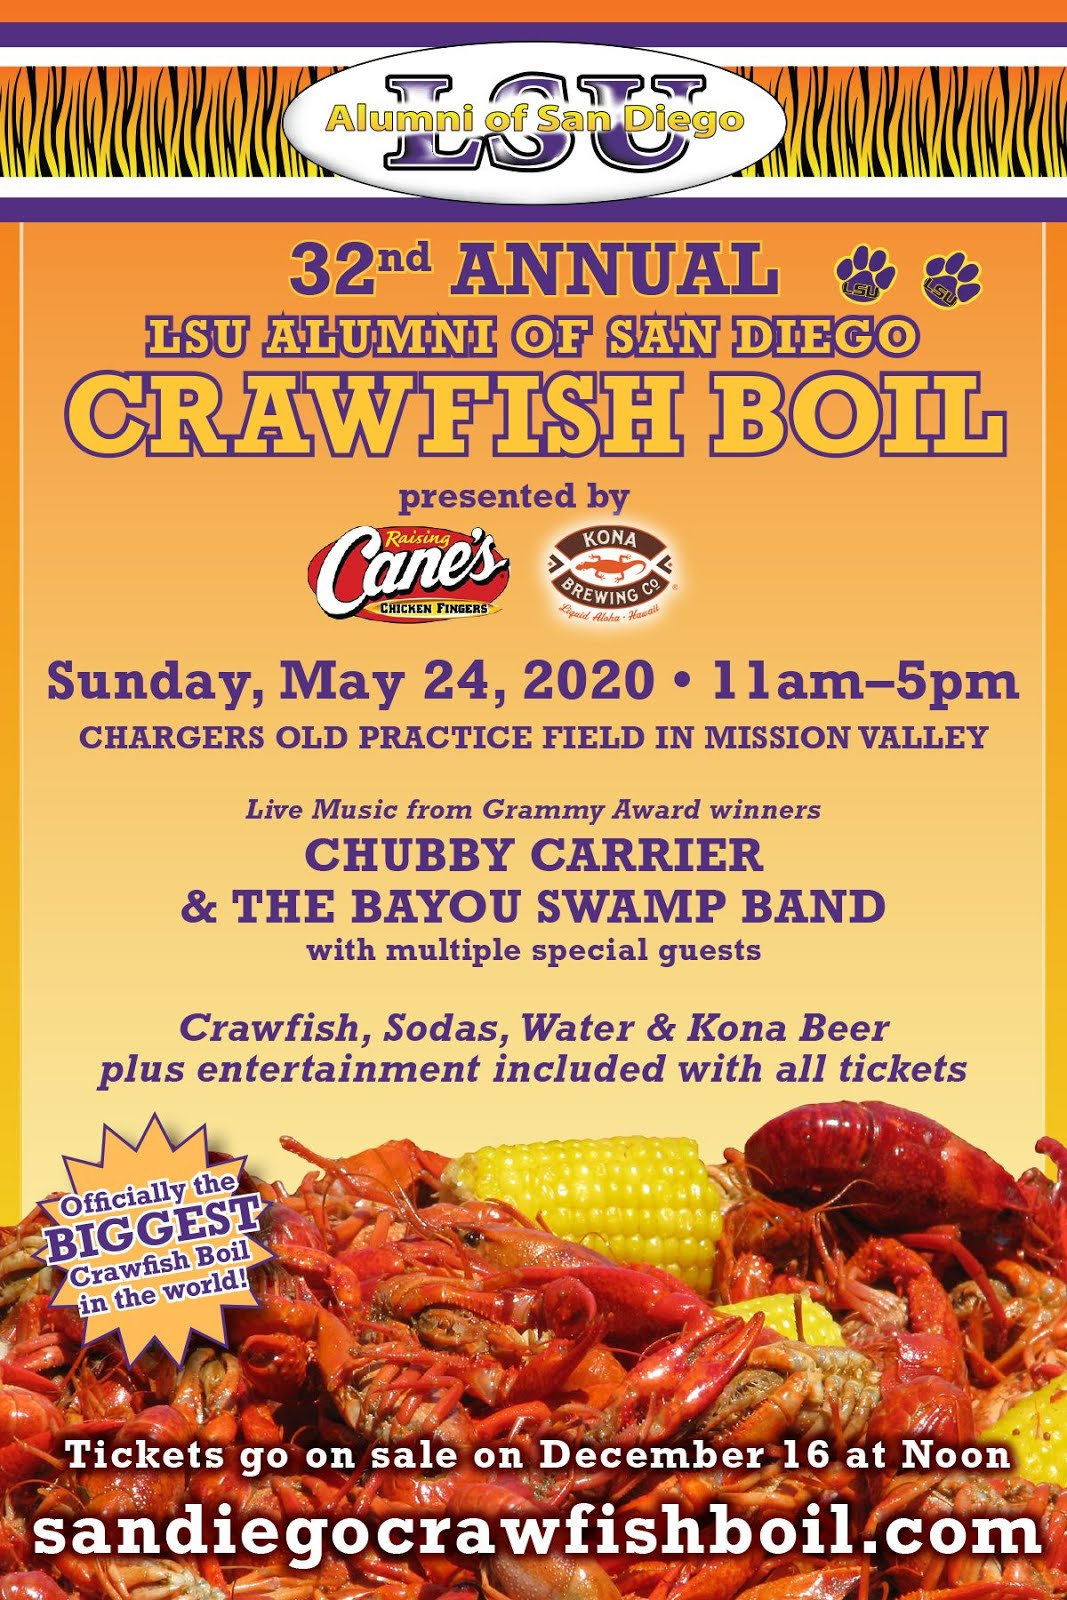 Save on tickets & tables to the LSU San Diego Crawfish Boil - May 24!!